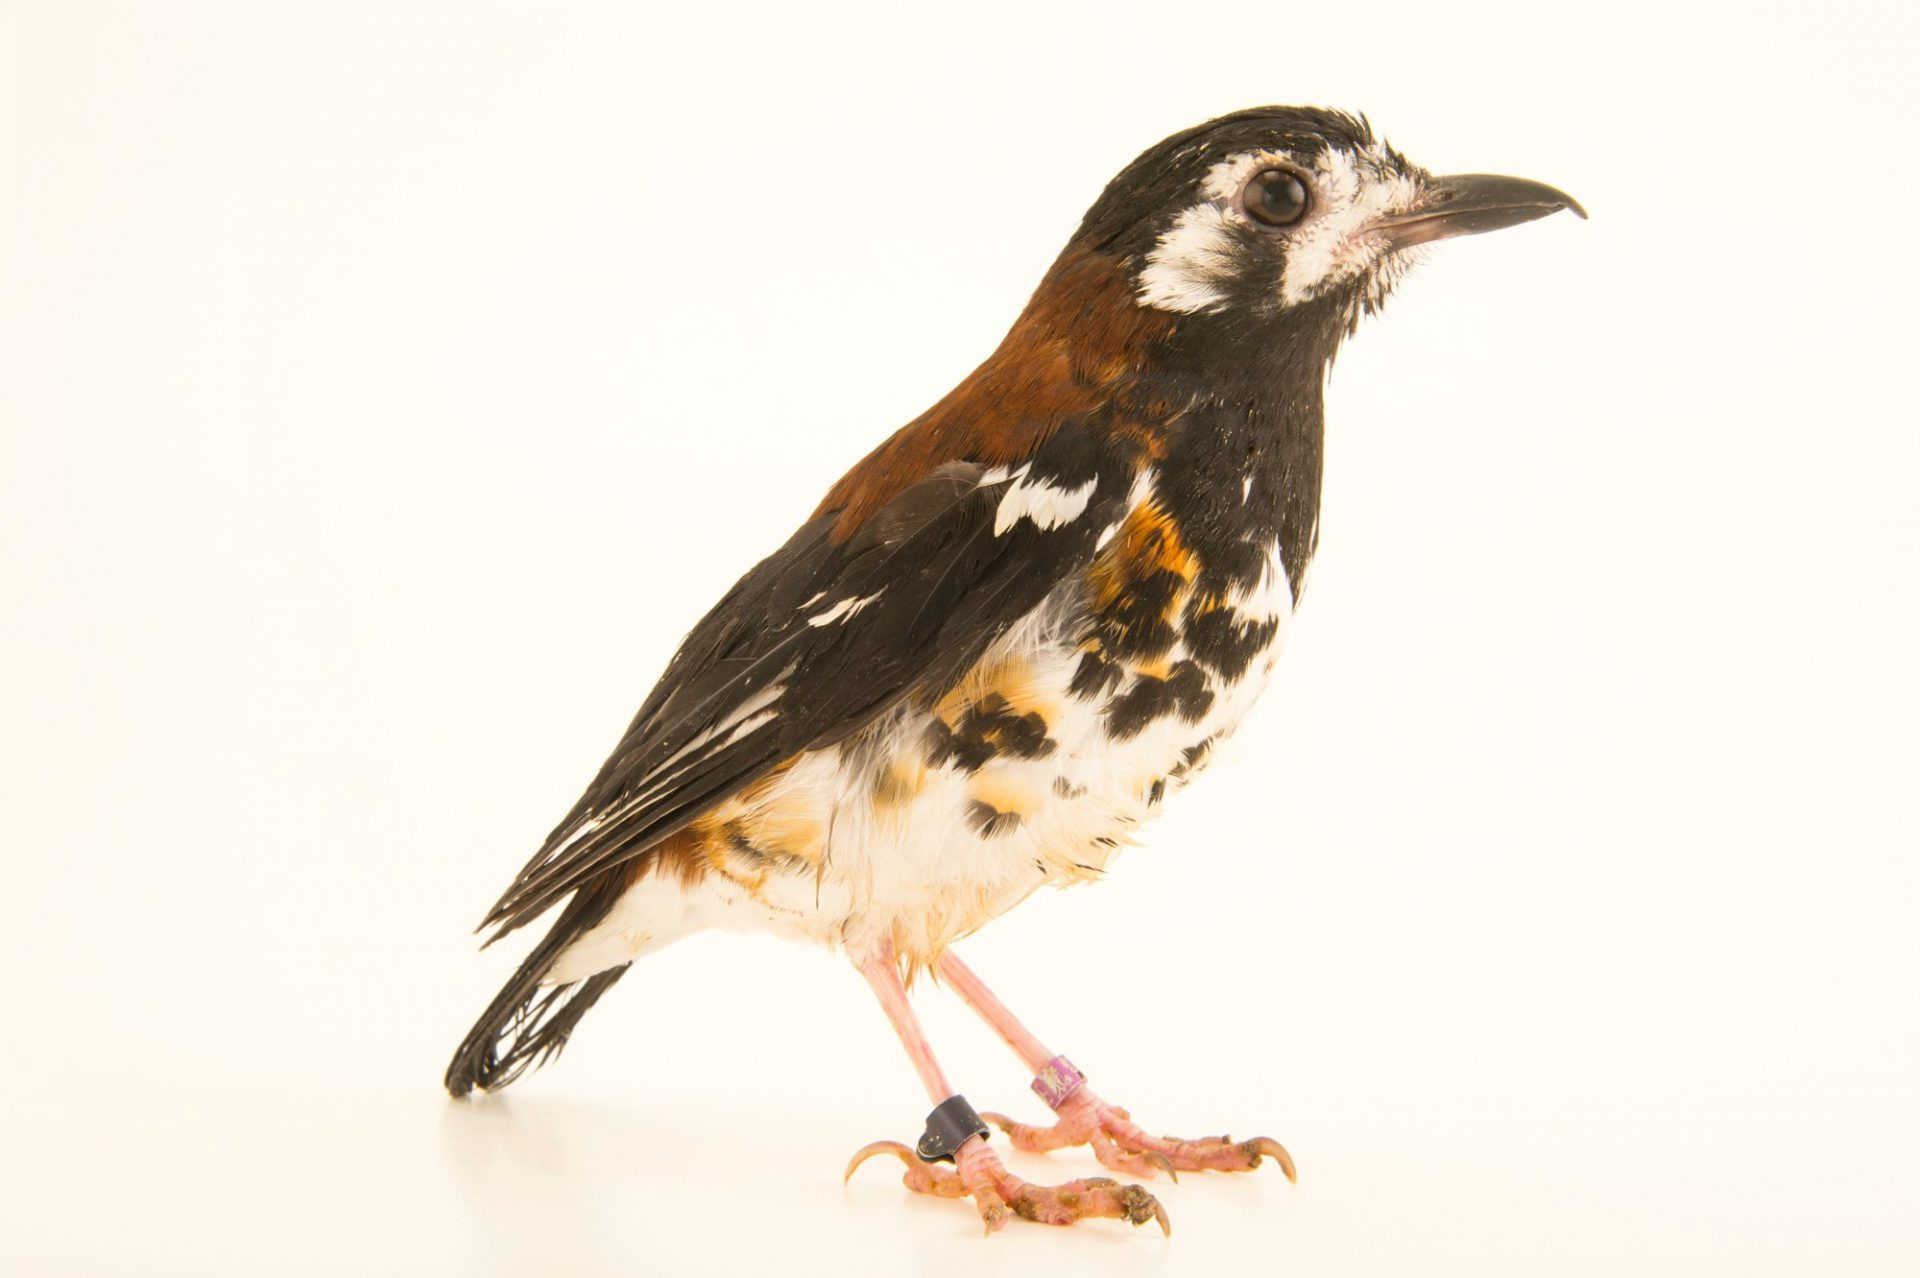 Photo: A Doherty`s thrush or chestnut-backed thrush (Zoothera dohertyi) from a private collection in Choussy, France.